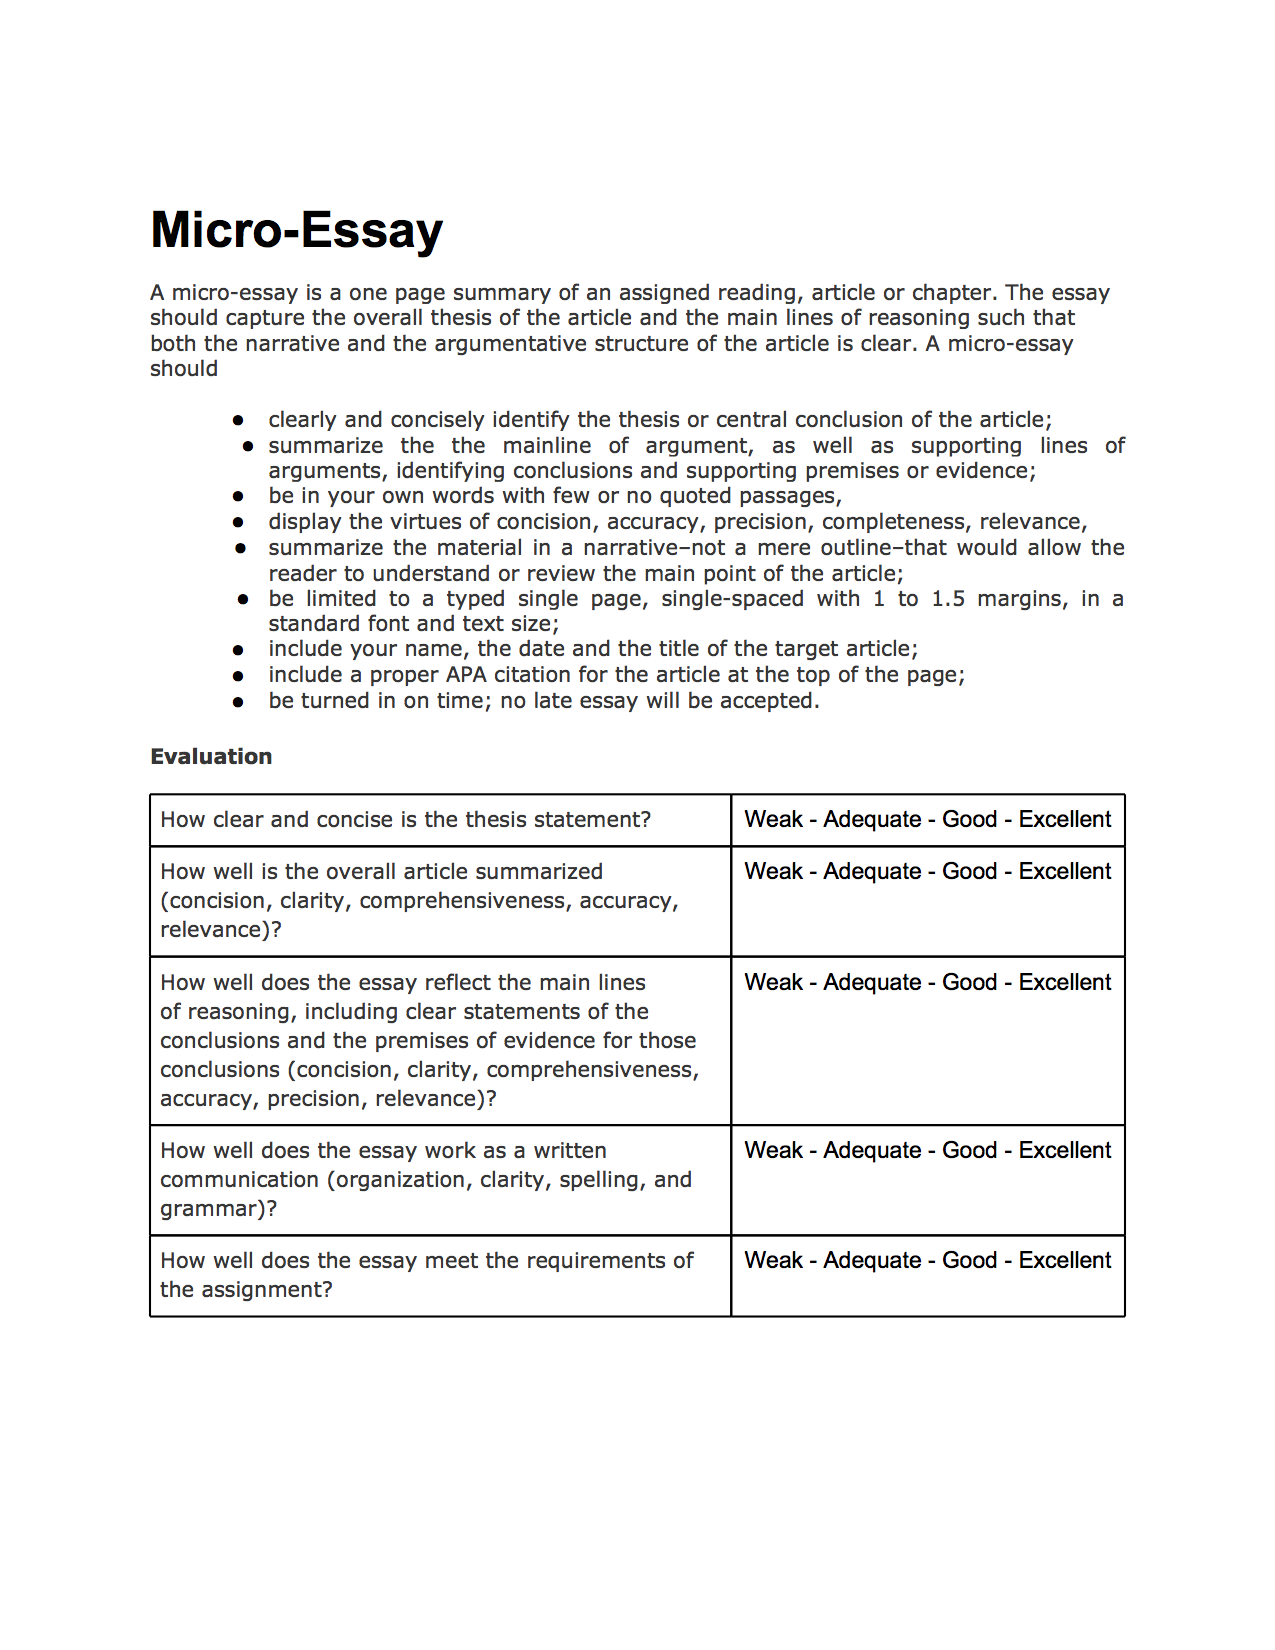 Concept Essay Microessays Apa Format For Essay Paper also Persuasive Essay Techniques Microessays Darwin And Philosophy Essay Vs Research Paper